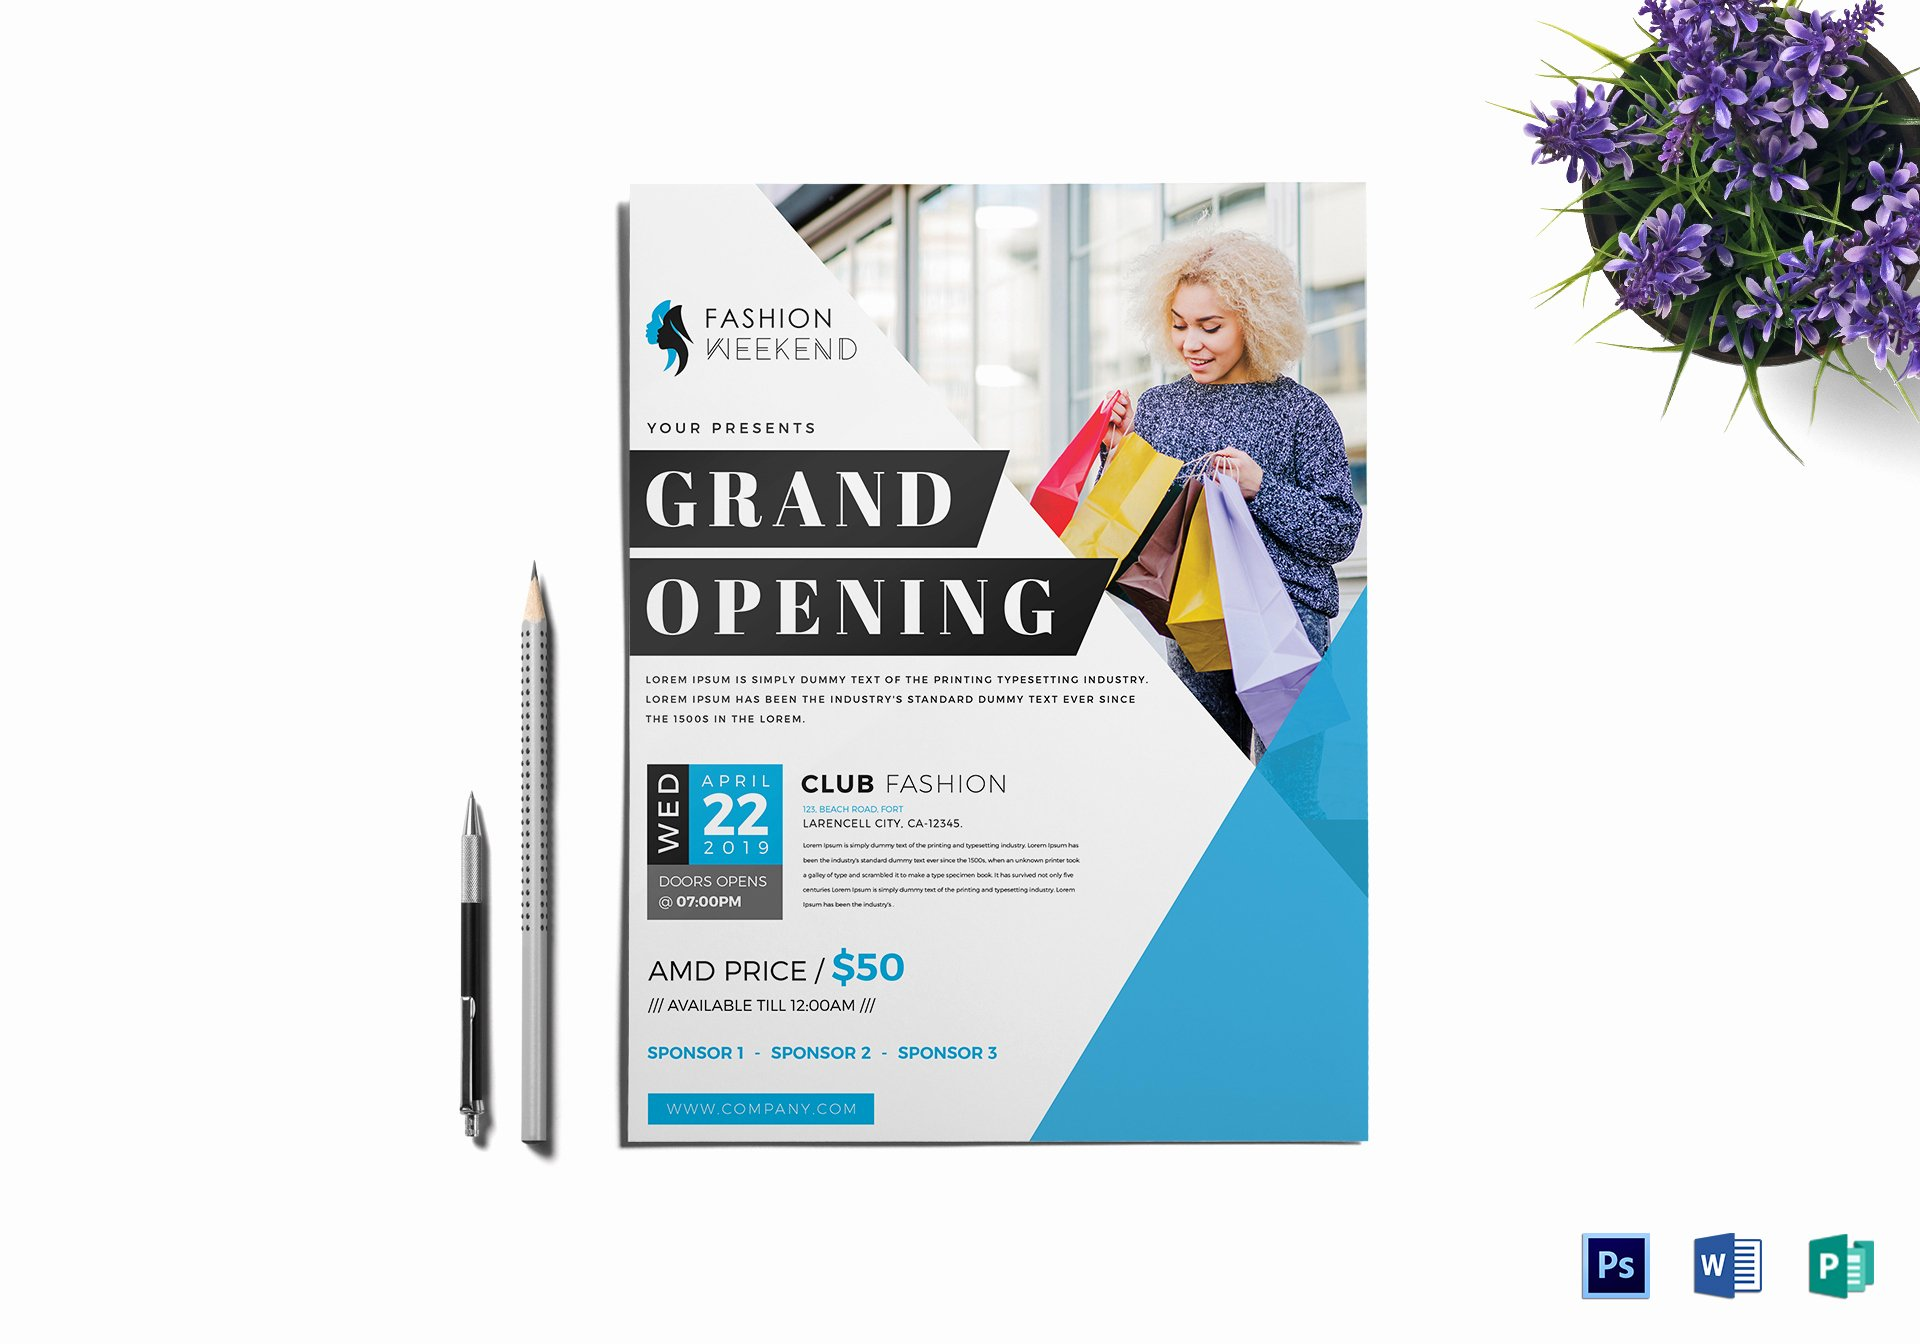 Grand Opening Flyer Template Free New Fashion Grand Opening Flyer Design Template In Word Psd